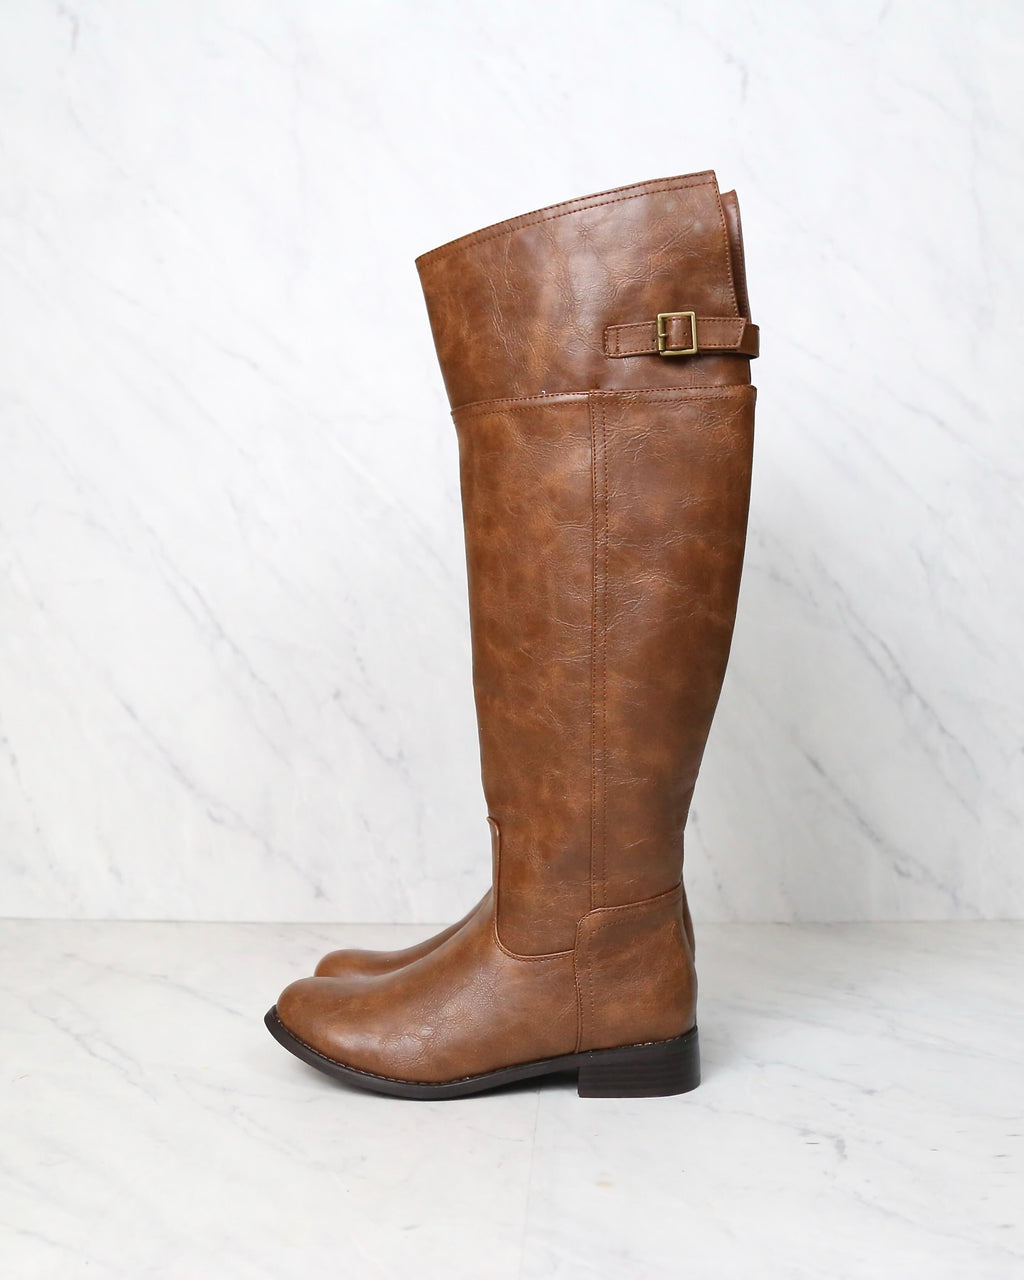 Rider's Women's Distressed Tall Riding Boots in Tan